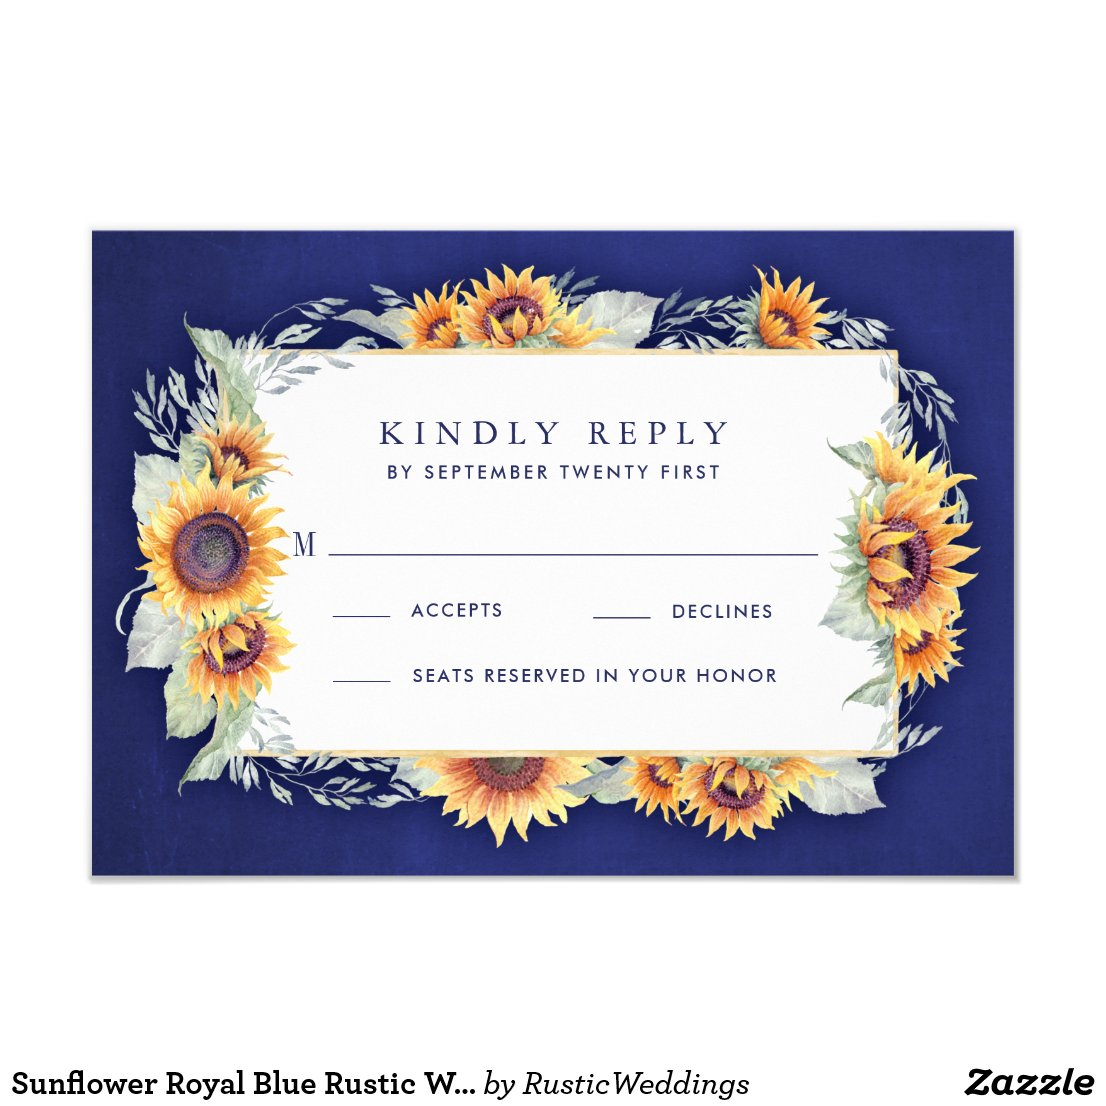 Royal Blue and Sunflower Wedding Invitations RSVP Cards